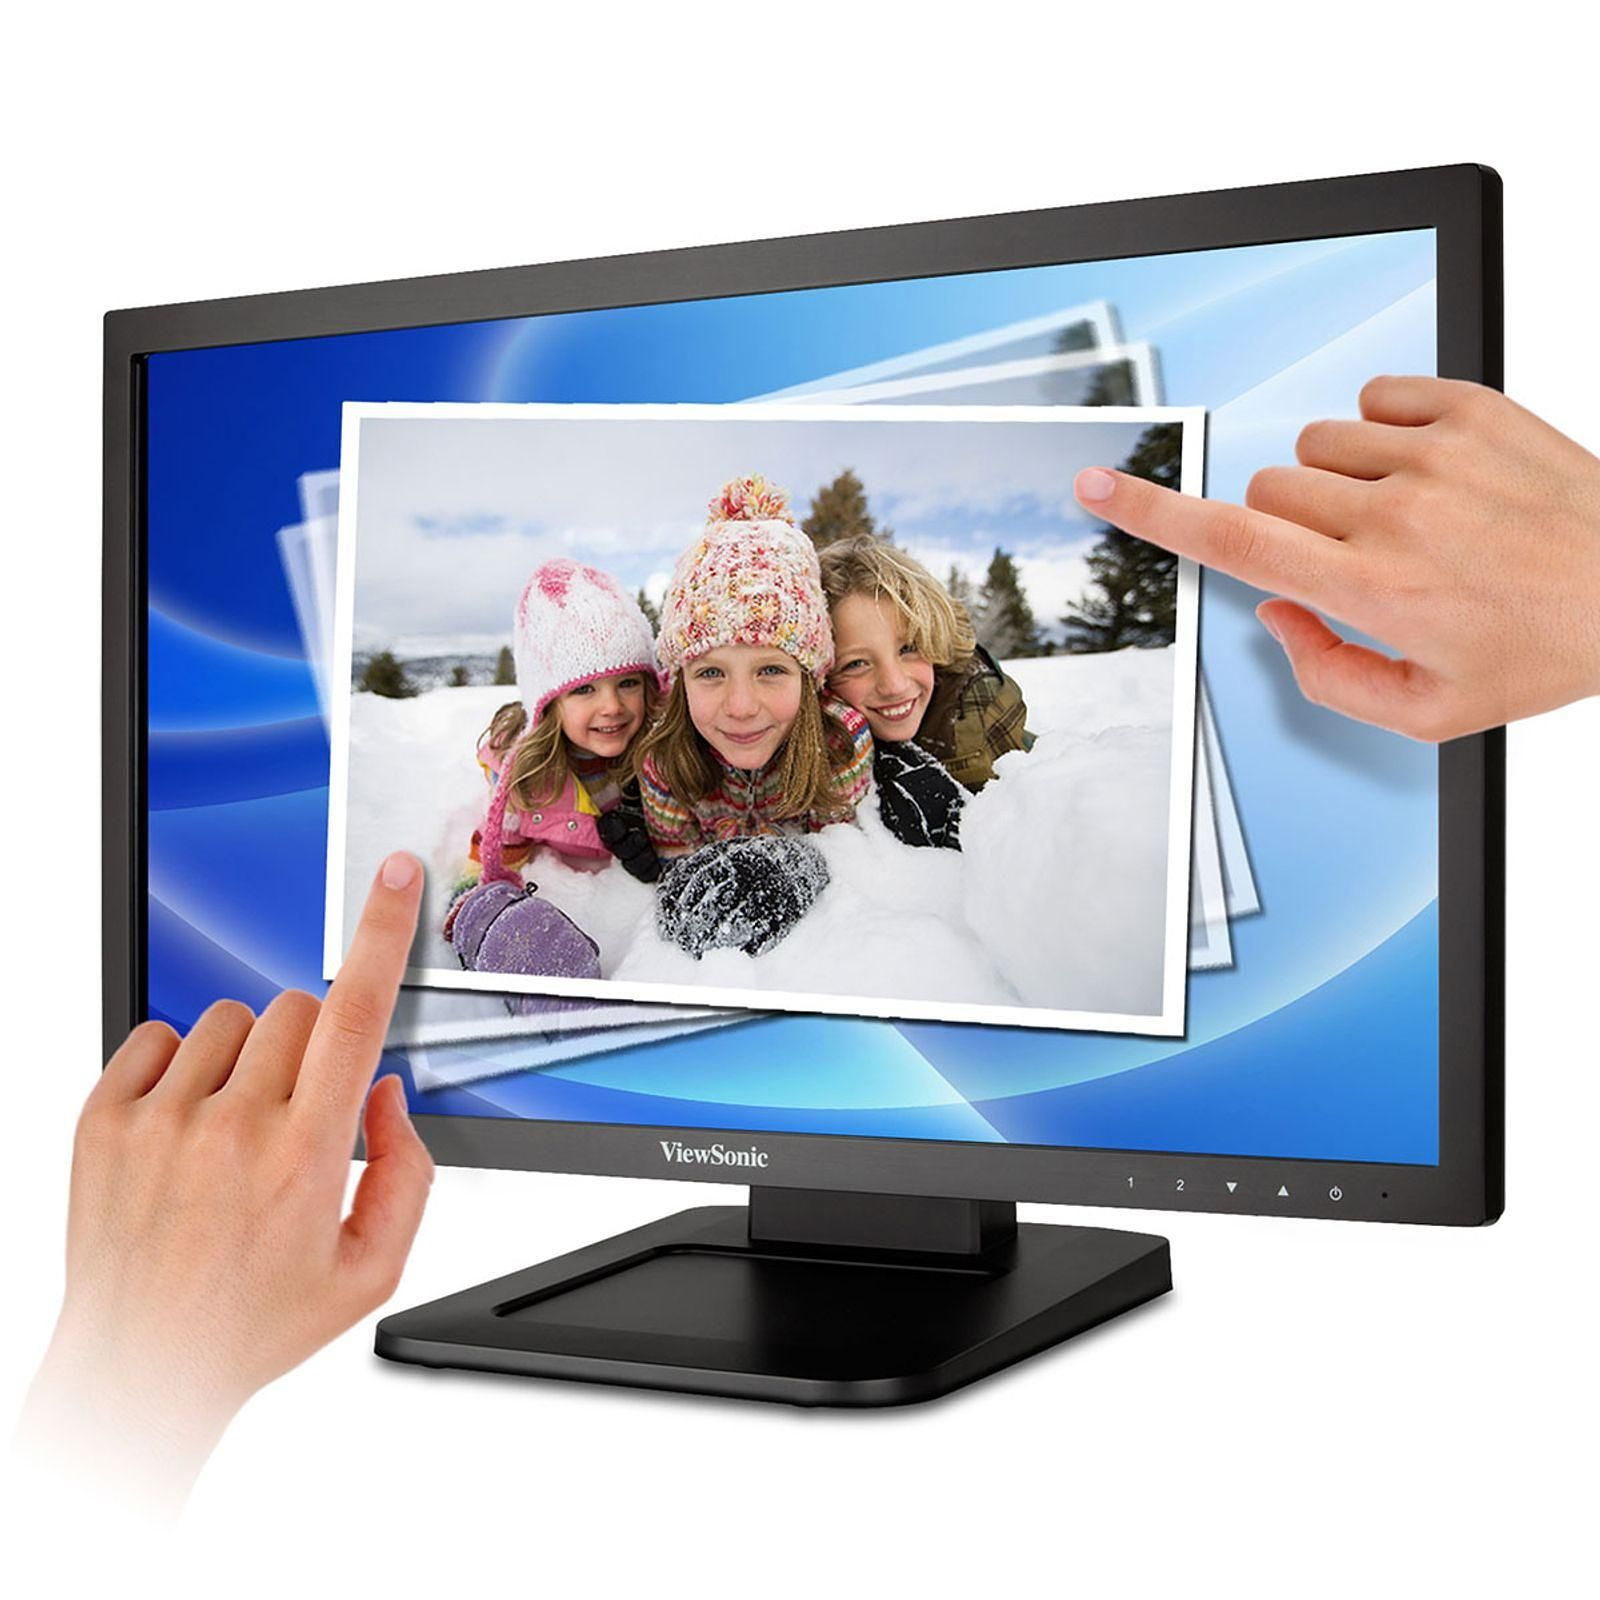 Ecran Moniteur LED 22 pouces Tactile Multitouch ViewSonic TD2220-2 Full HD VGA/DVI, Informatique Réunion 974